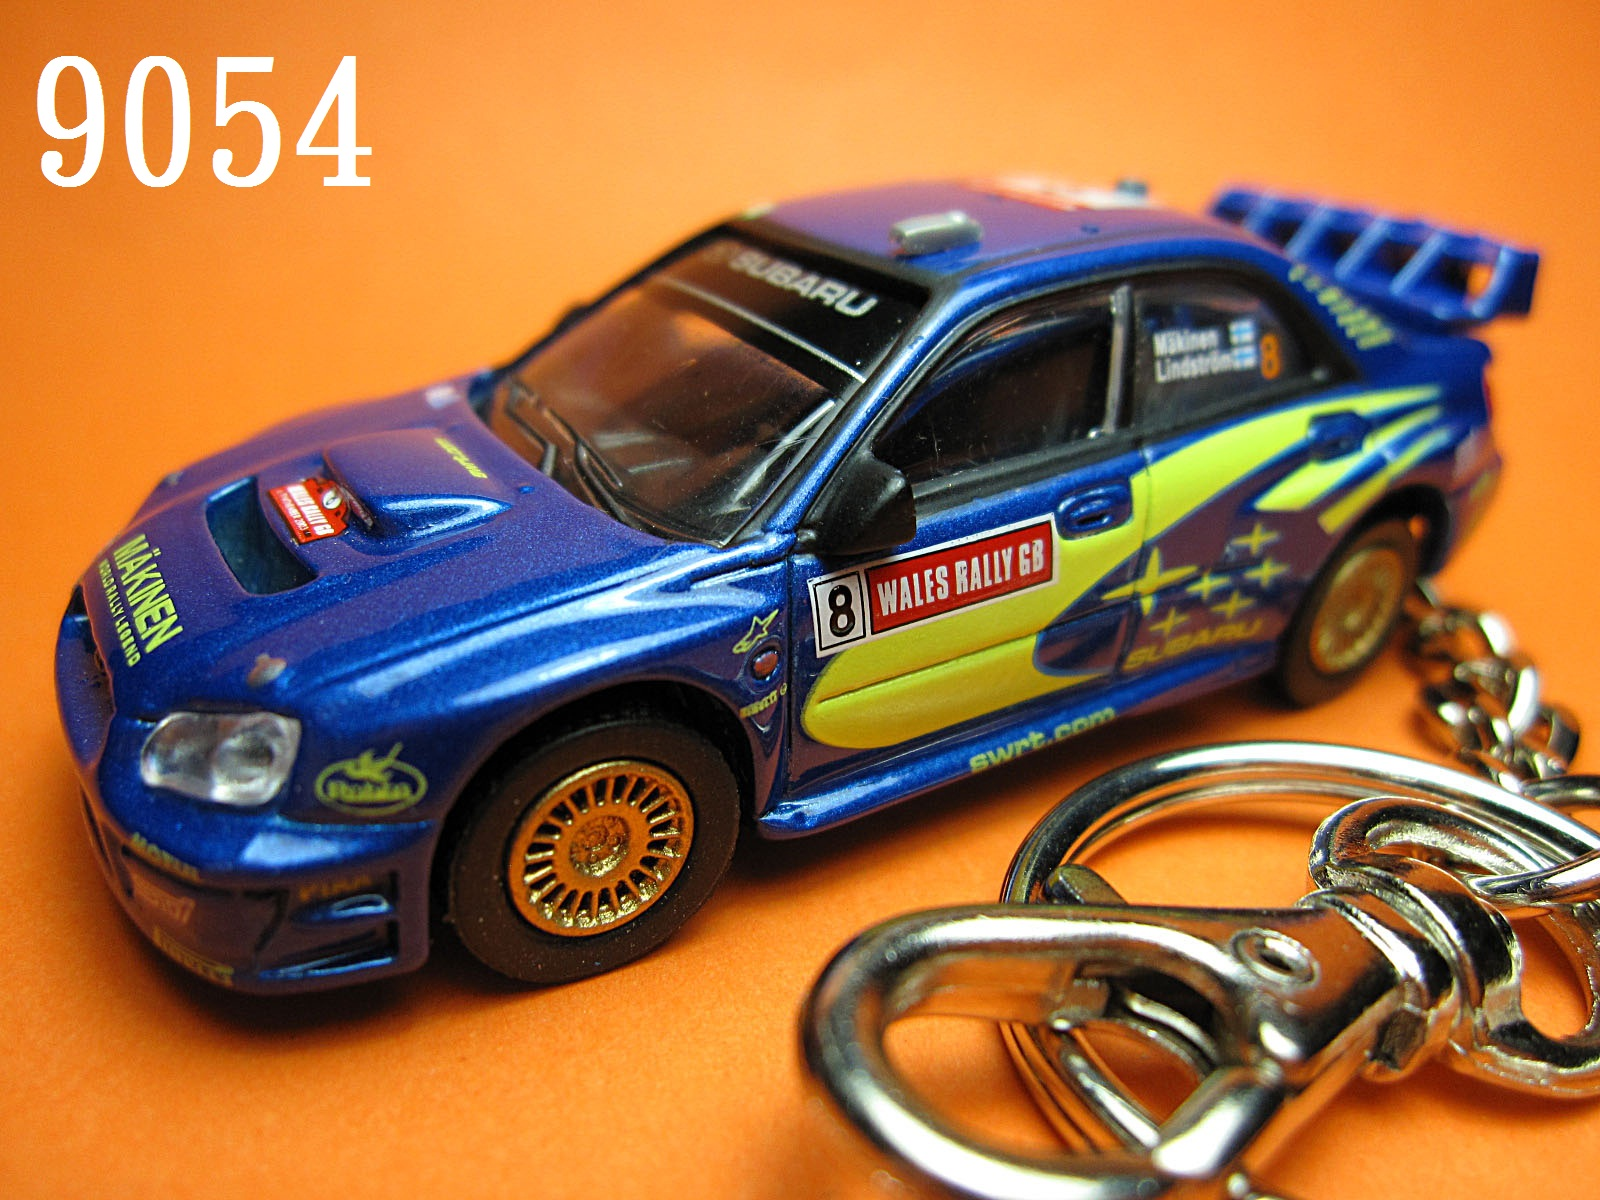 Subaru Impreza GDB WRC'03 GB Makinen#8 (Blue) Die-cast Key Chain